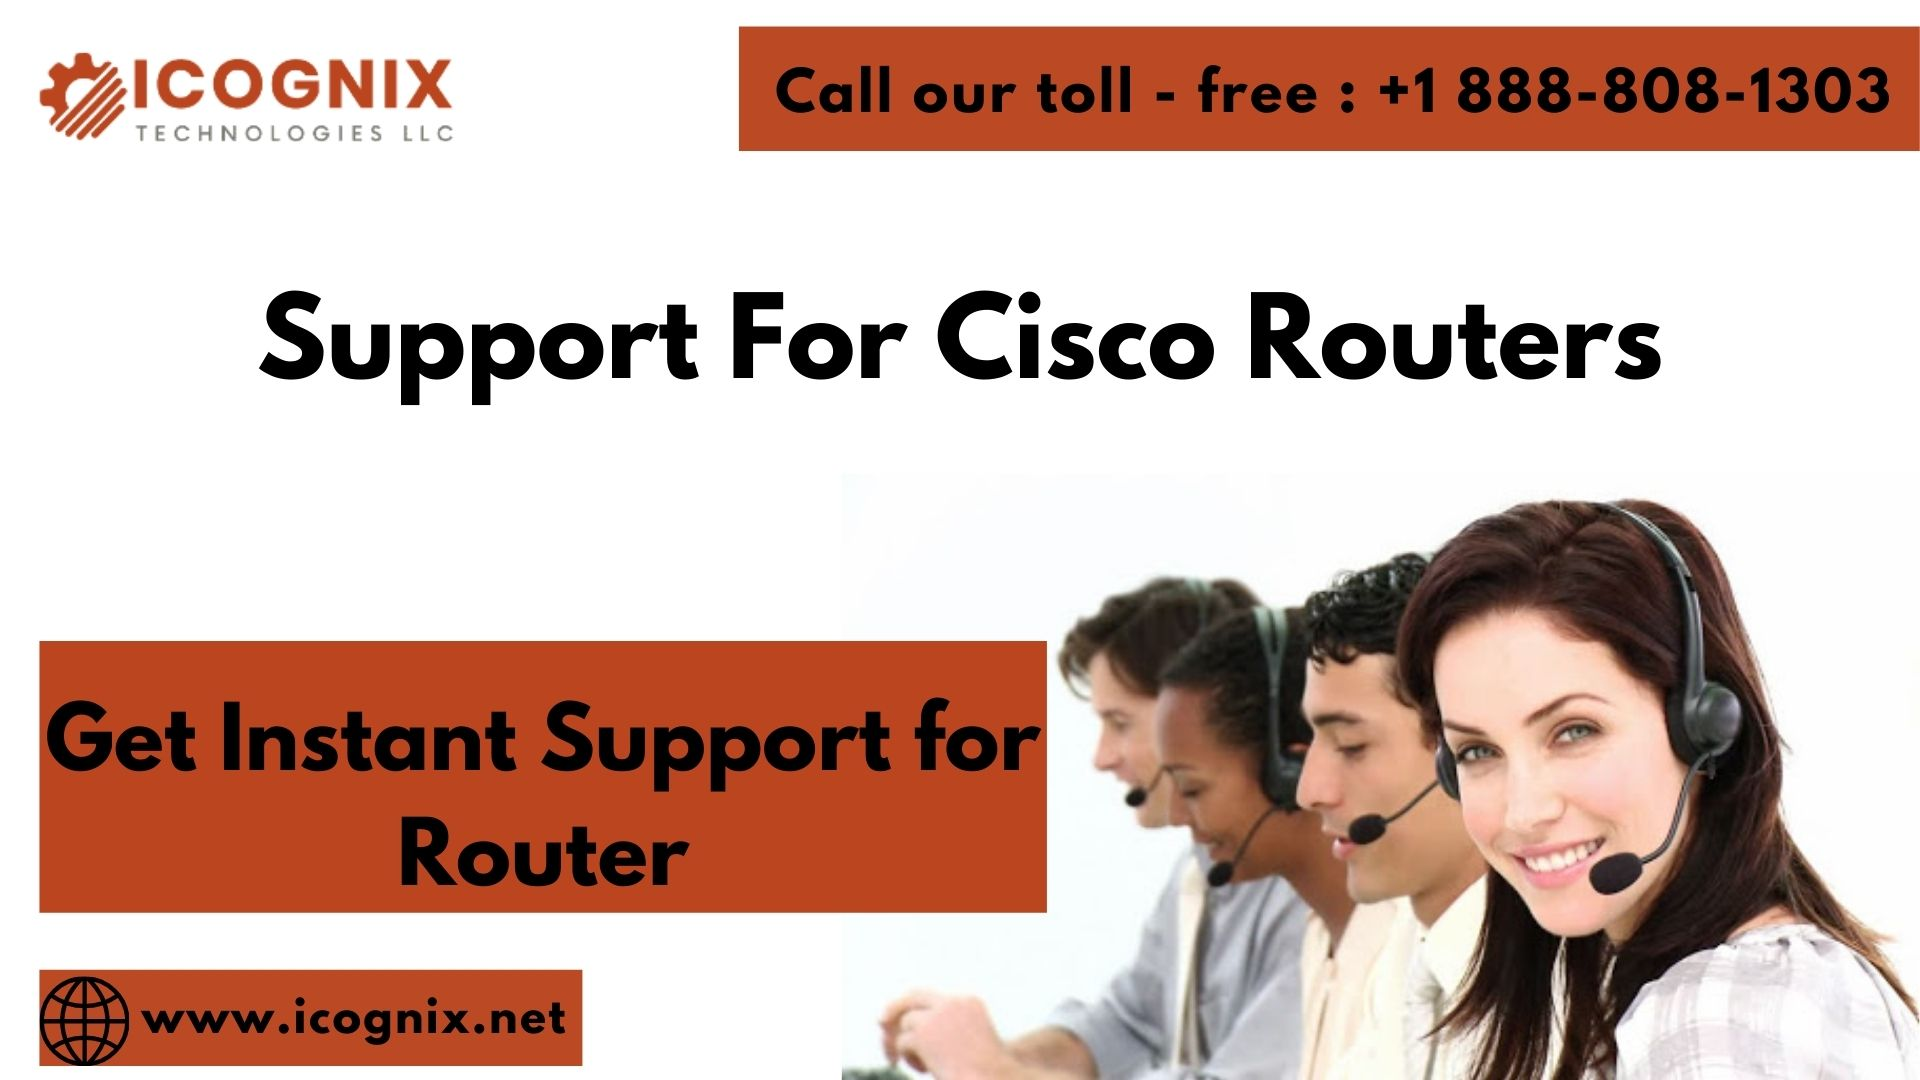 Support For Cisco Routers